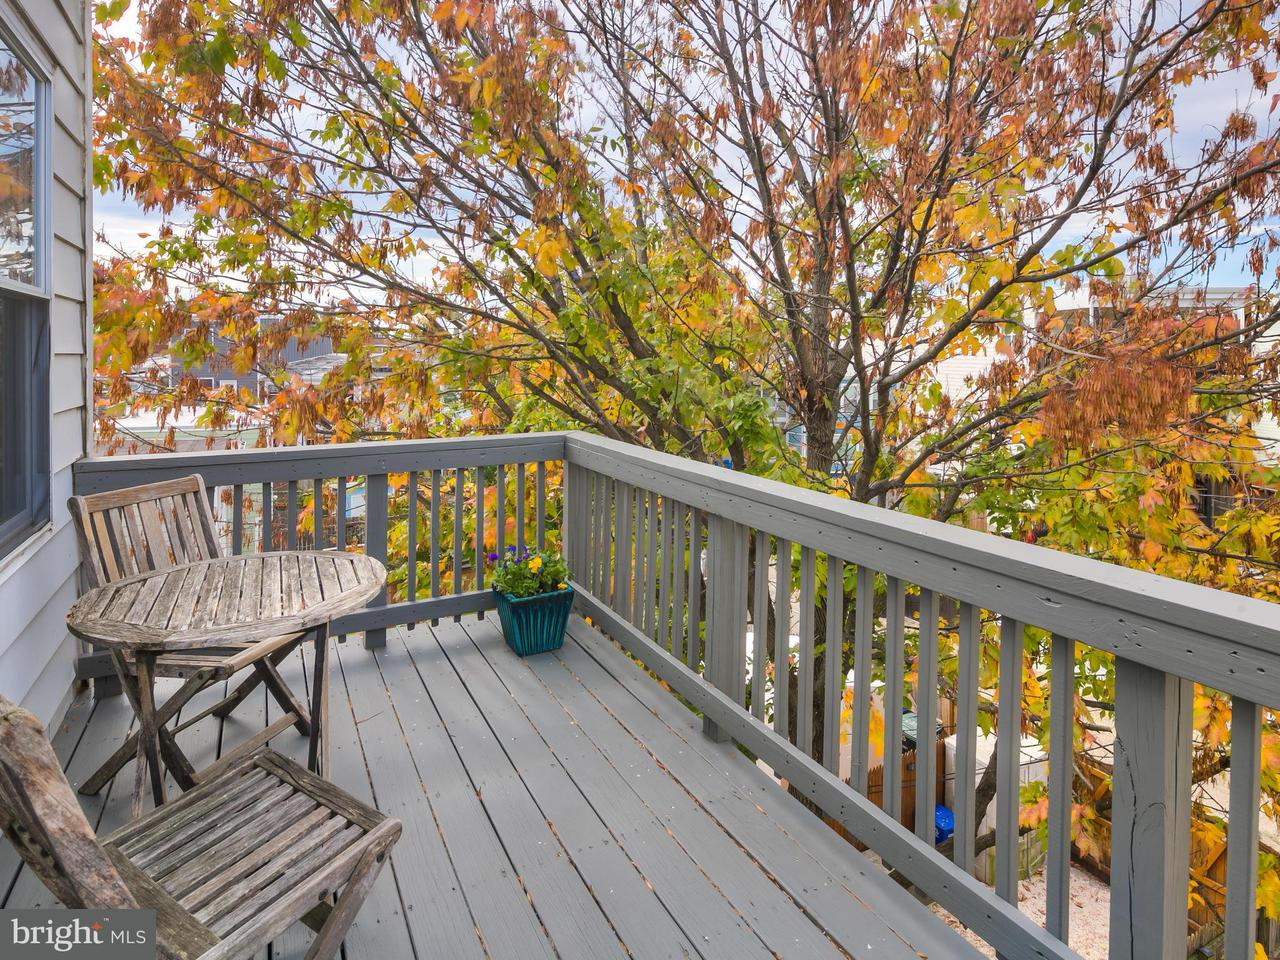 Townhouse for Sale at 231 17TH ST SE 231 17TH ST SE Washington, District Of Columbia 20003 United States